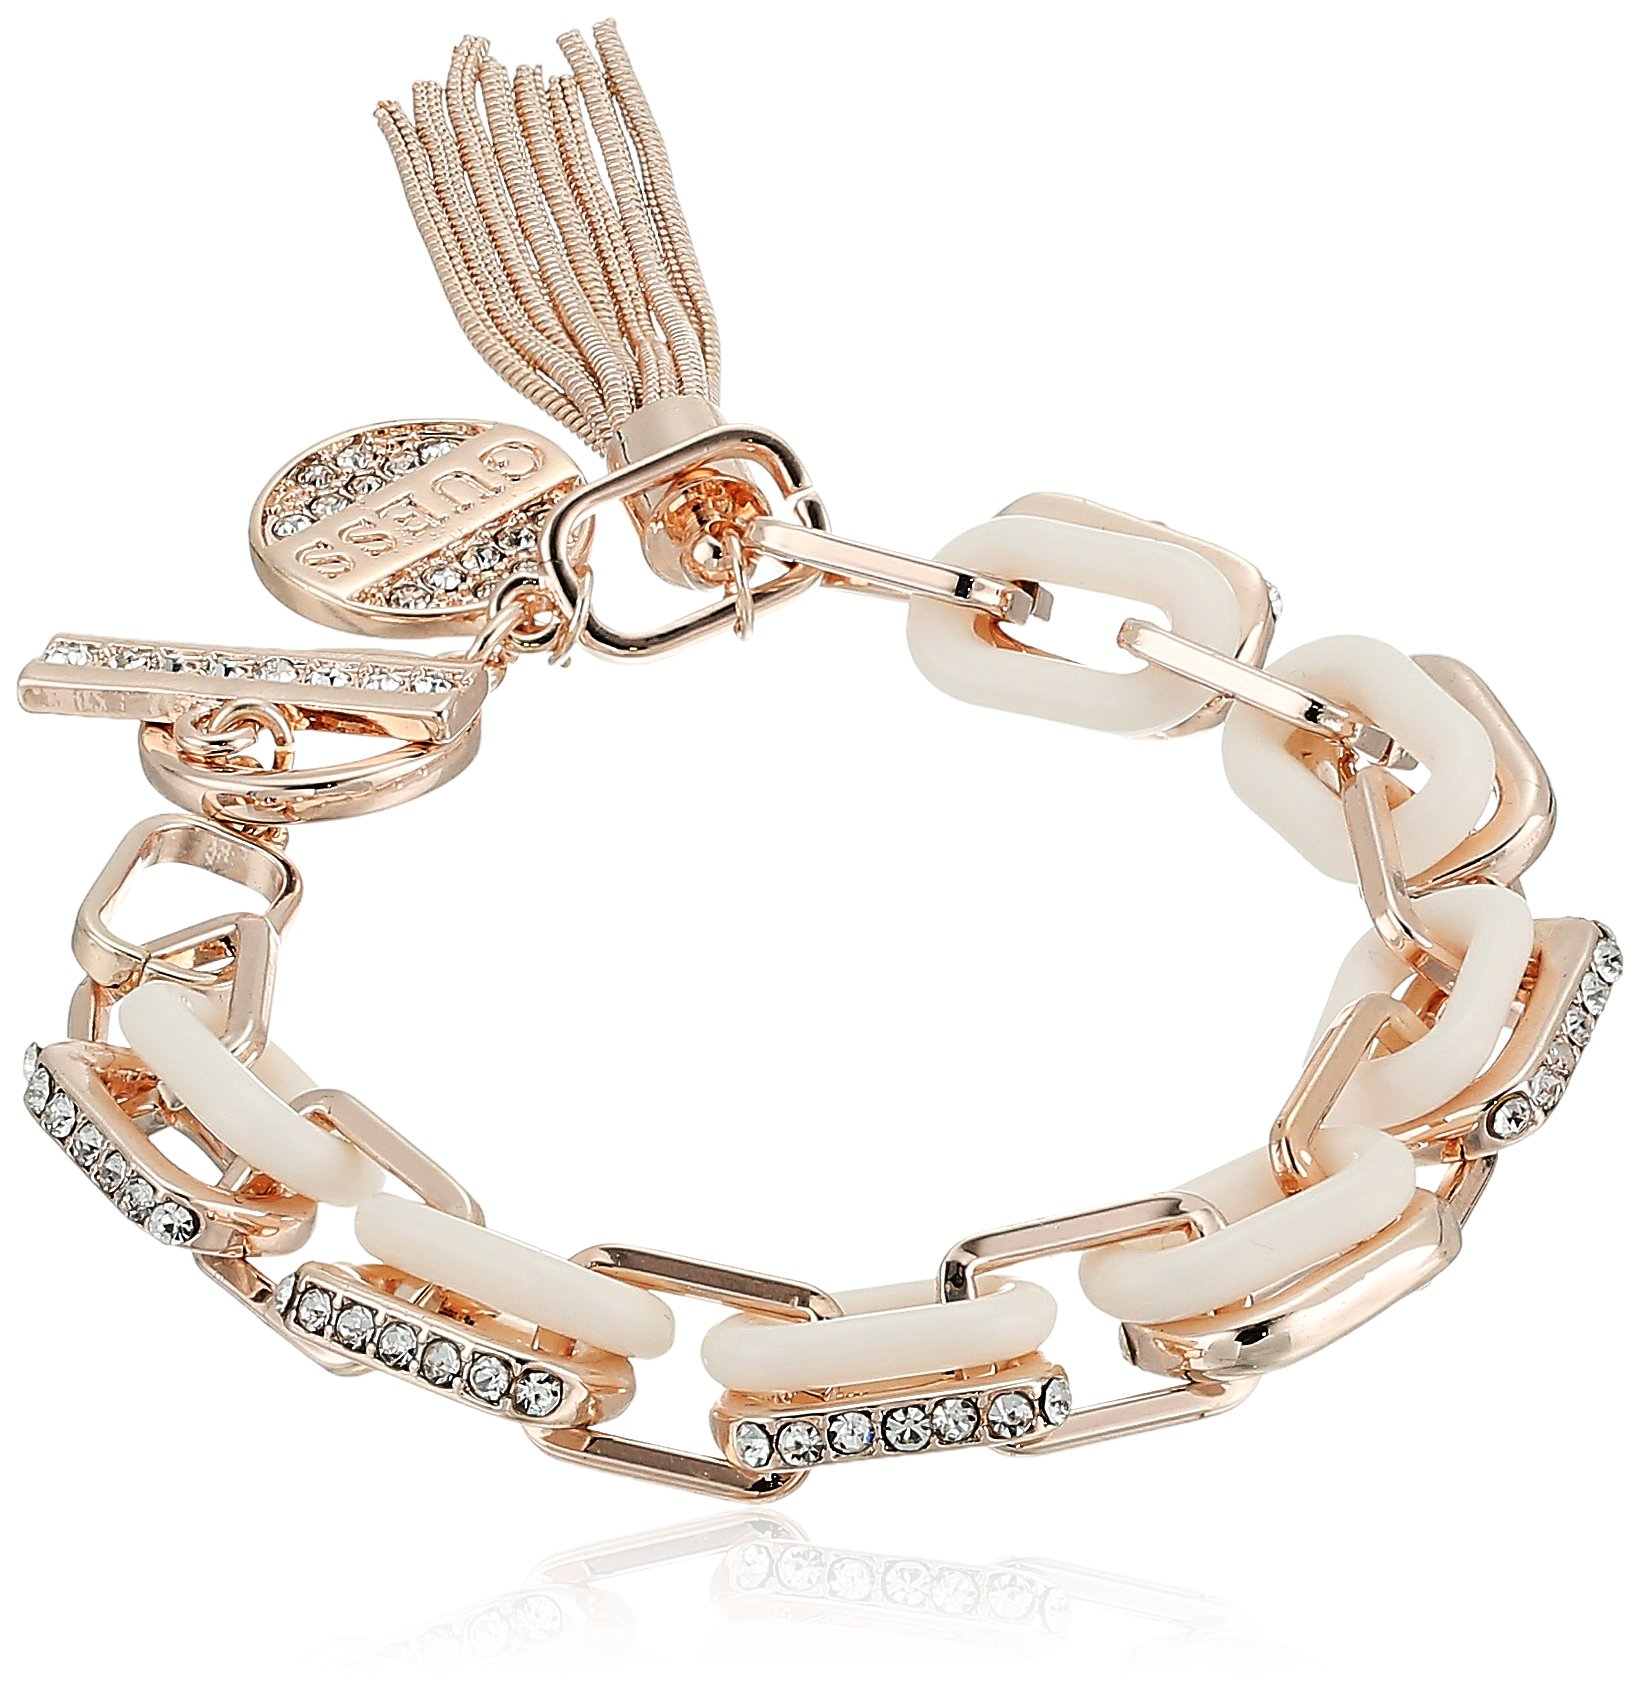 GUESS Womens Spring Whites Line Link Bracelet with Stones, Rose Gold, One Size